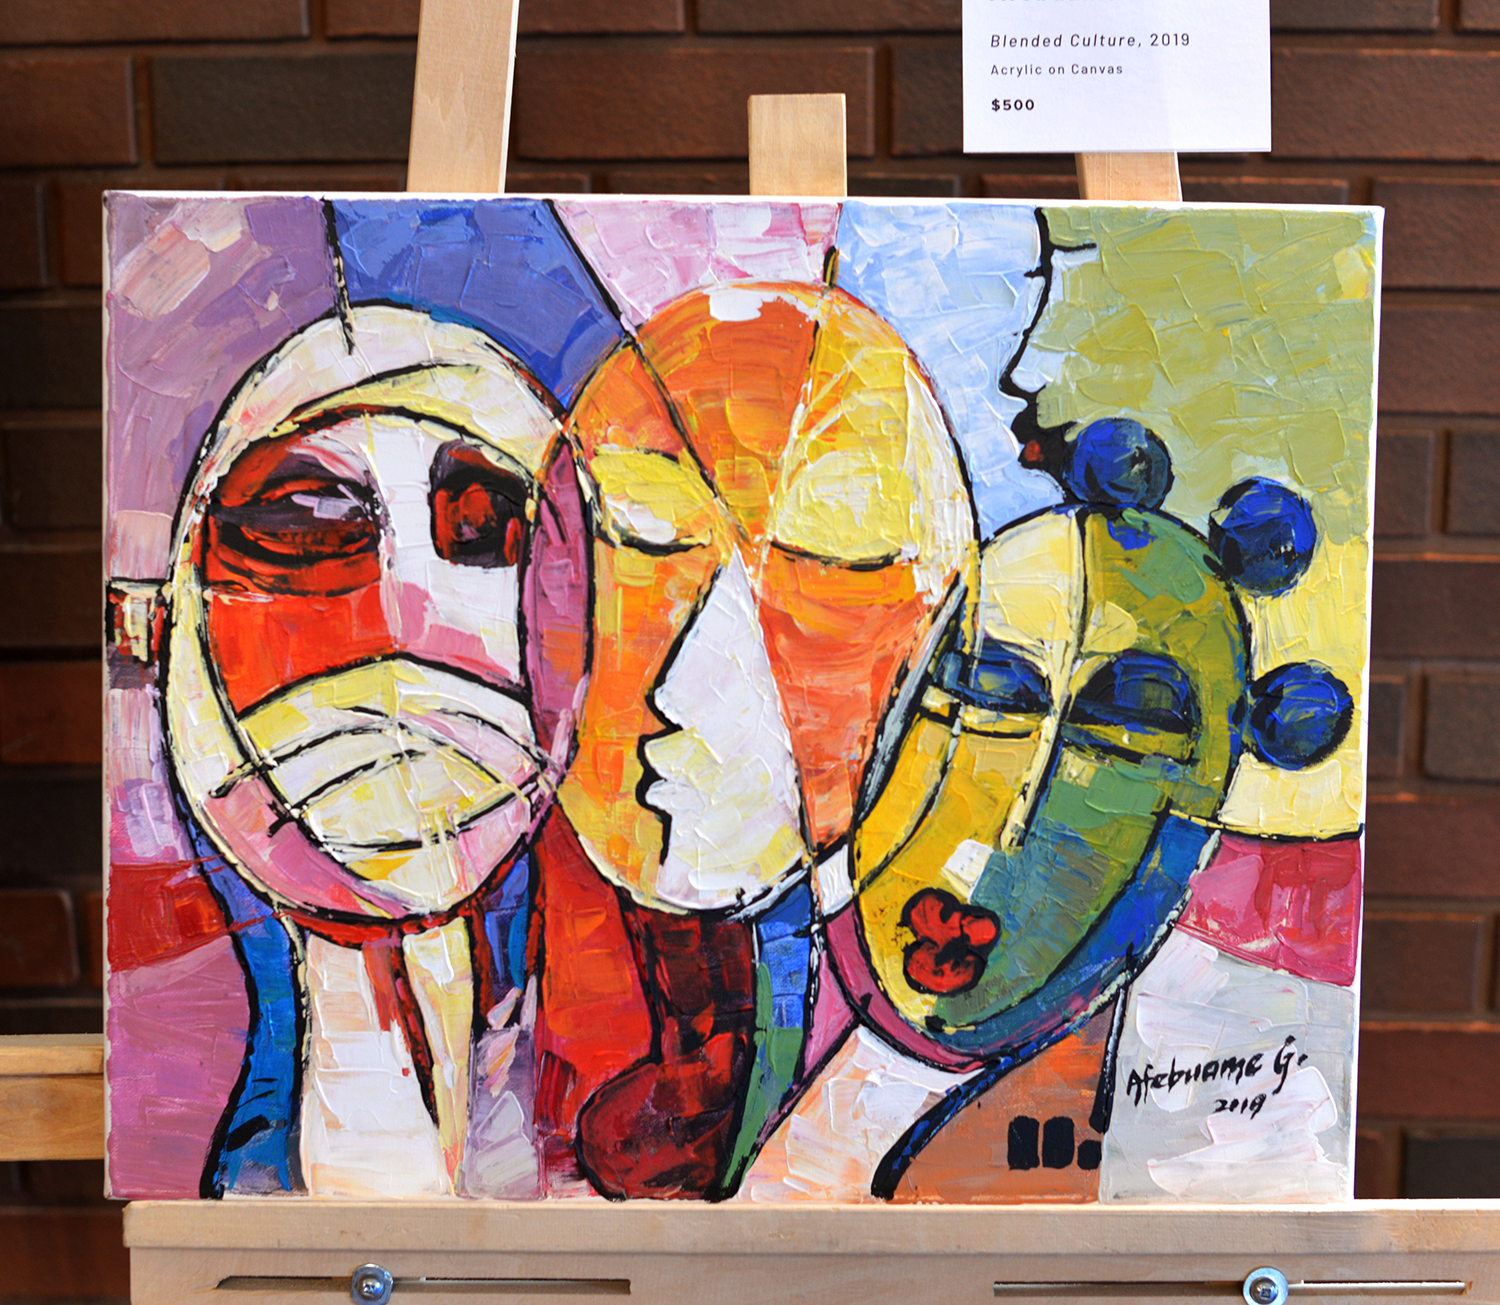 Blended Culture, 2019. Acrylic on Canvas by Afebuame Godfrey. Picture by Rommel Asuncion